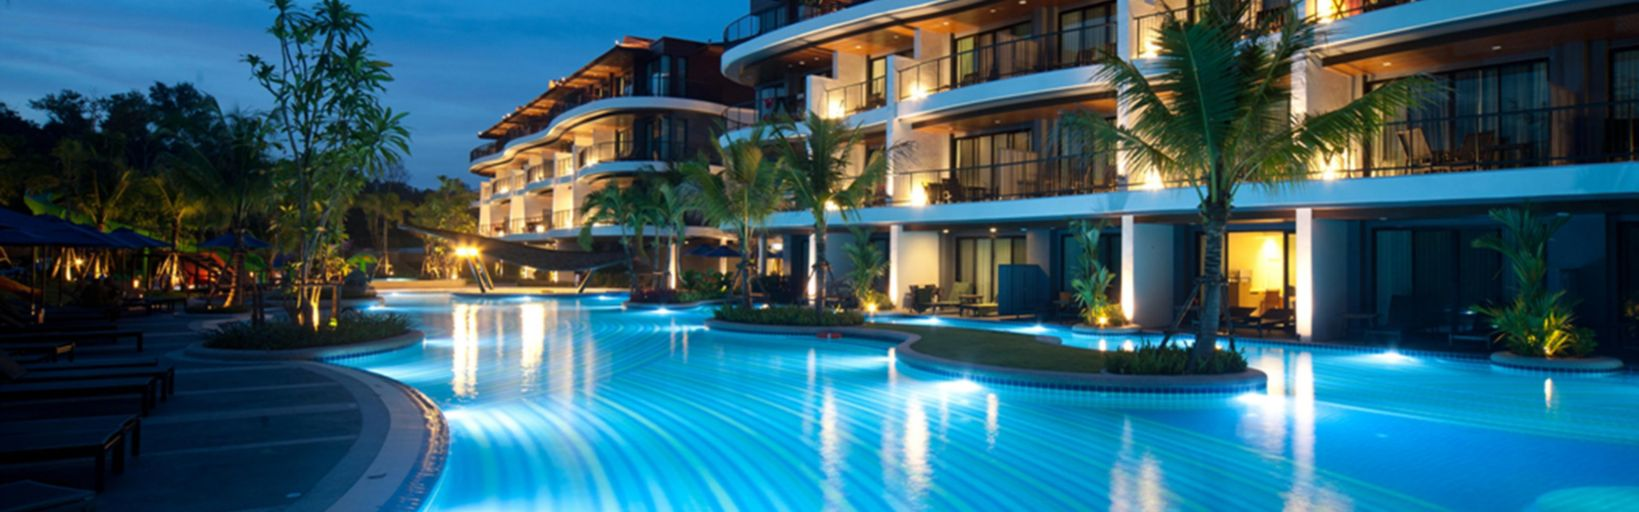 holiday-inn-resort-krabi-3574895554-16×5